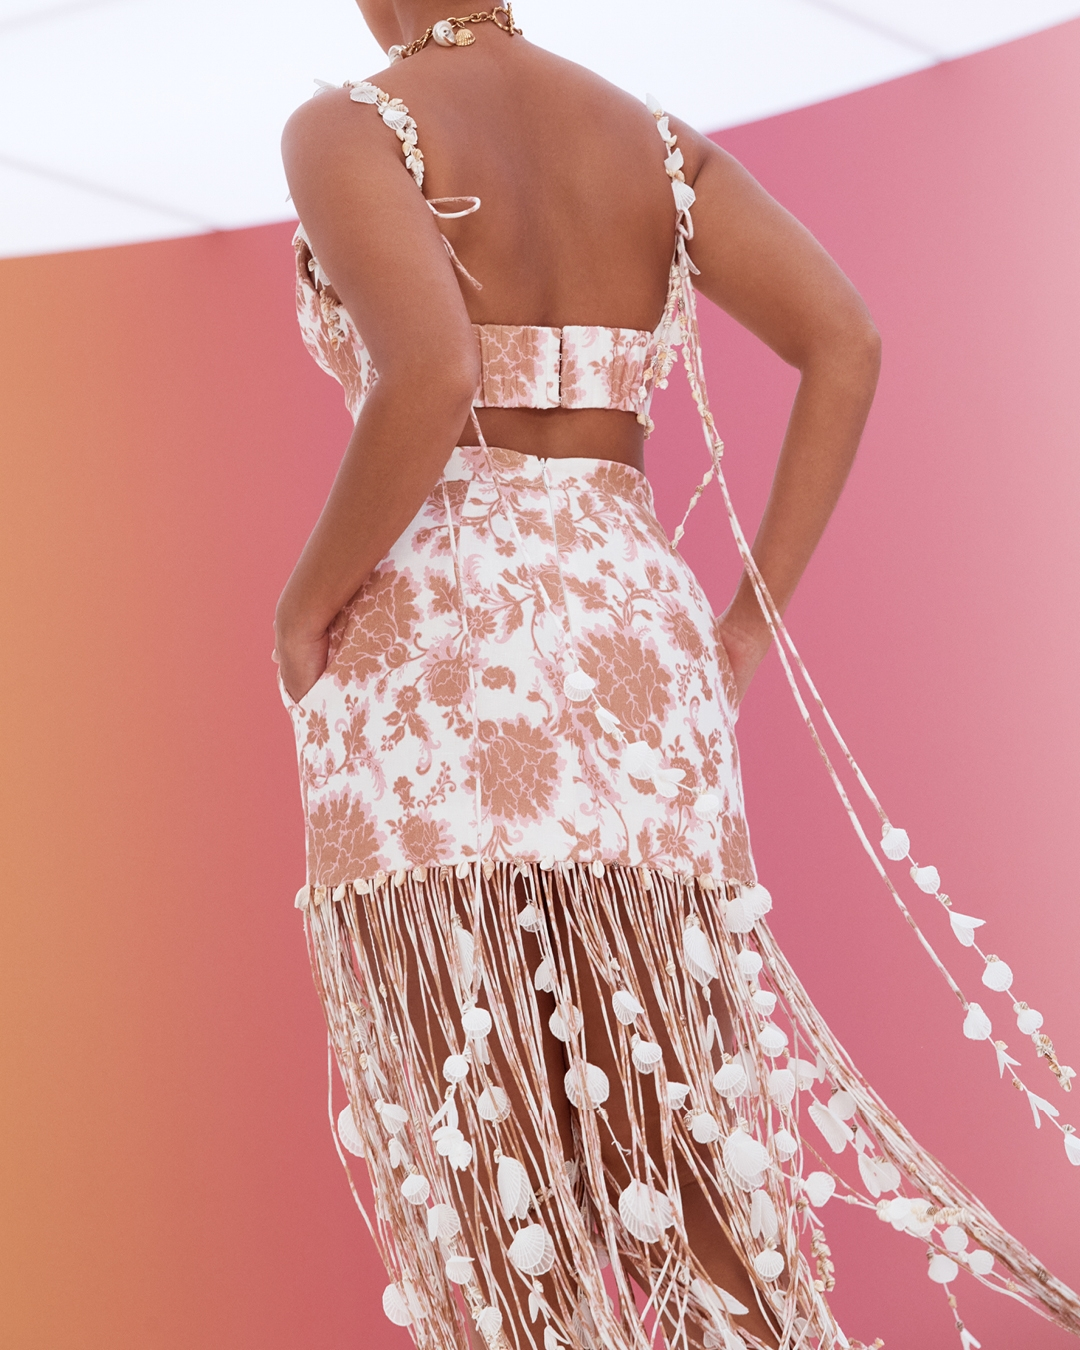 IN THE DETAIL: LOOK 30 RESORT READY TO WEAR 2022, THE POSTCARD